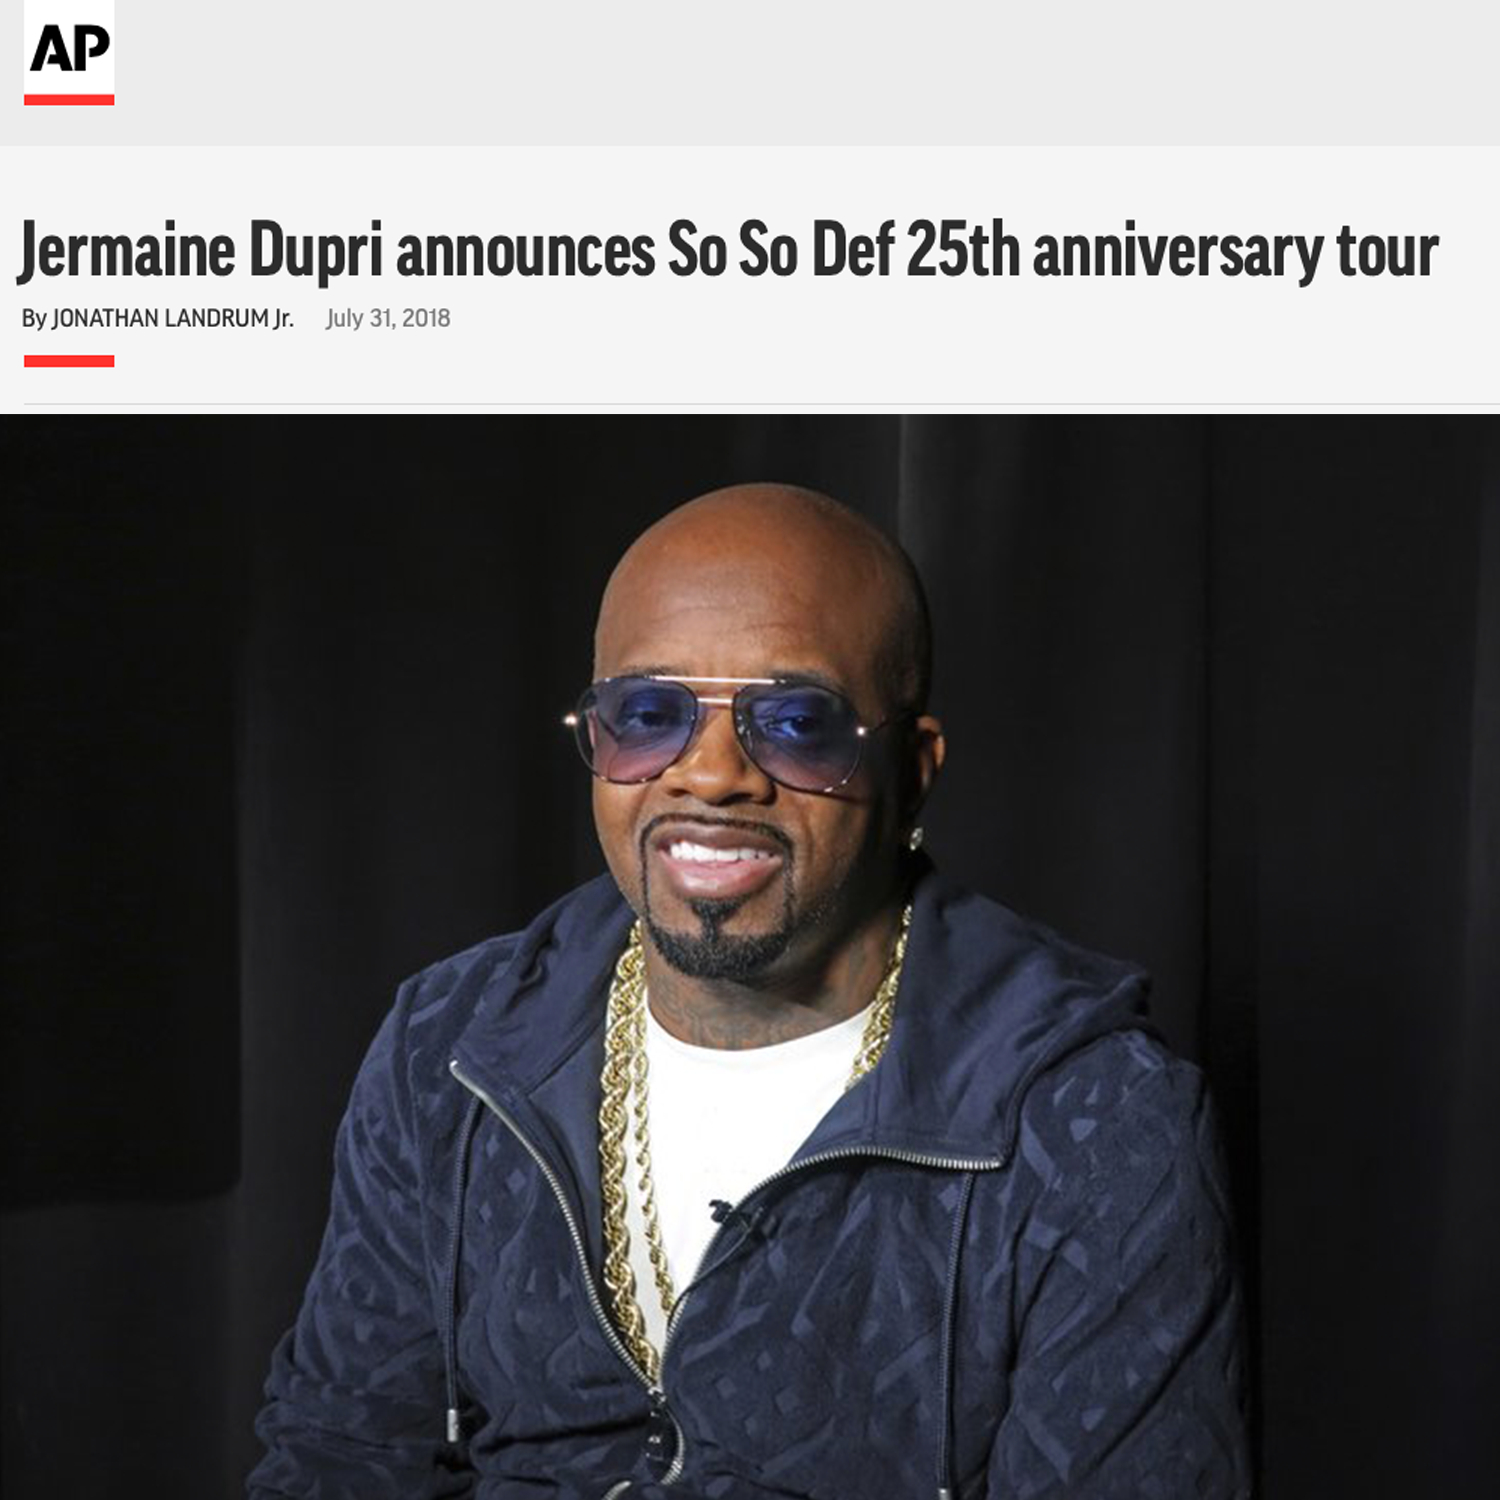 Jermaine Dupri and So So Def on Associated Press